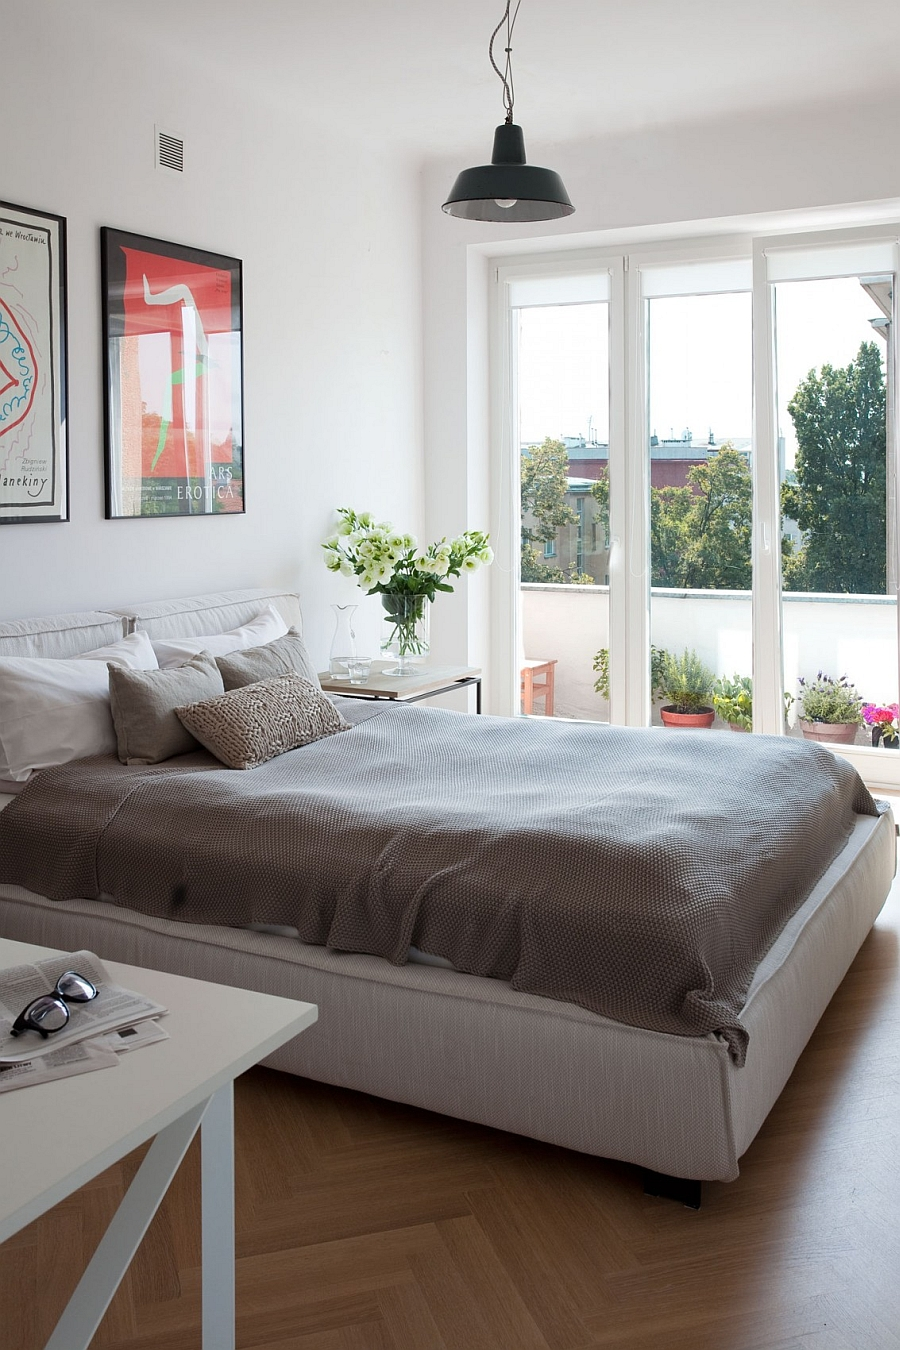 Bedroom in White Connected With the Balcony Outside Through Huge Windows Emphasizing the Feel of Space